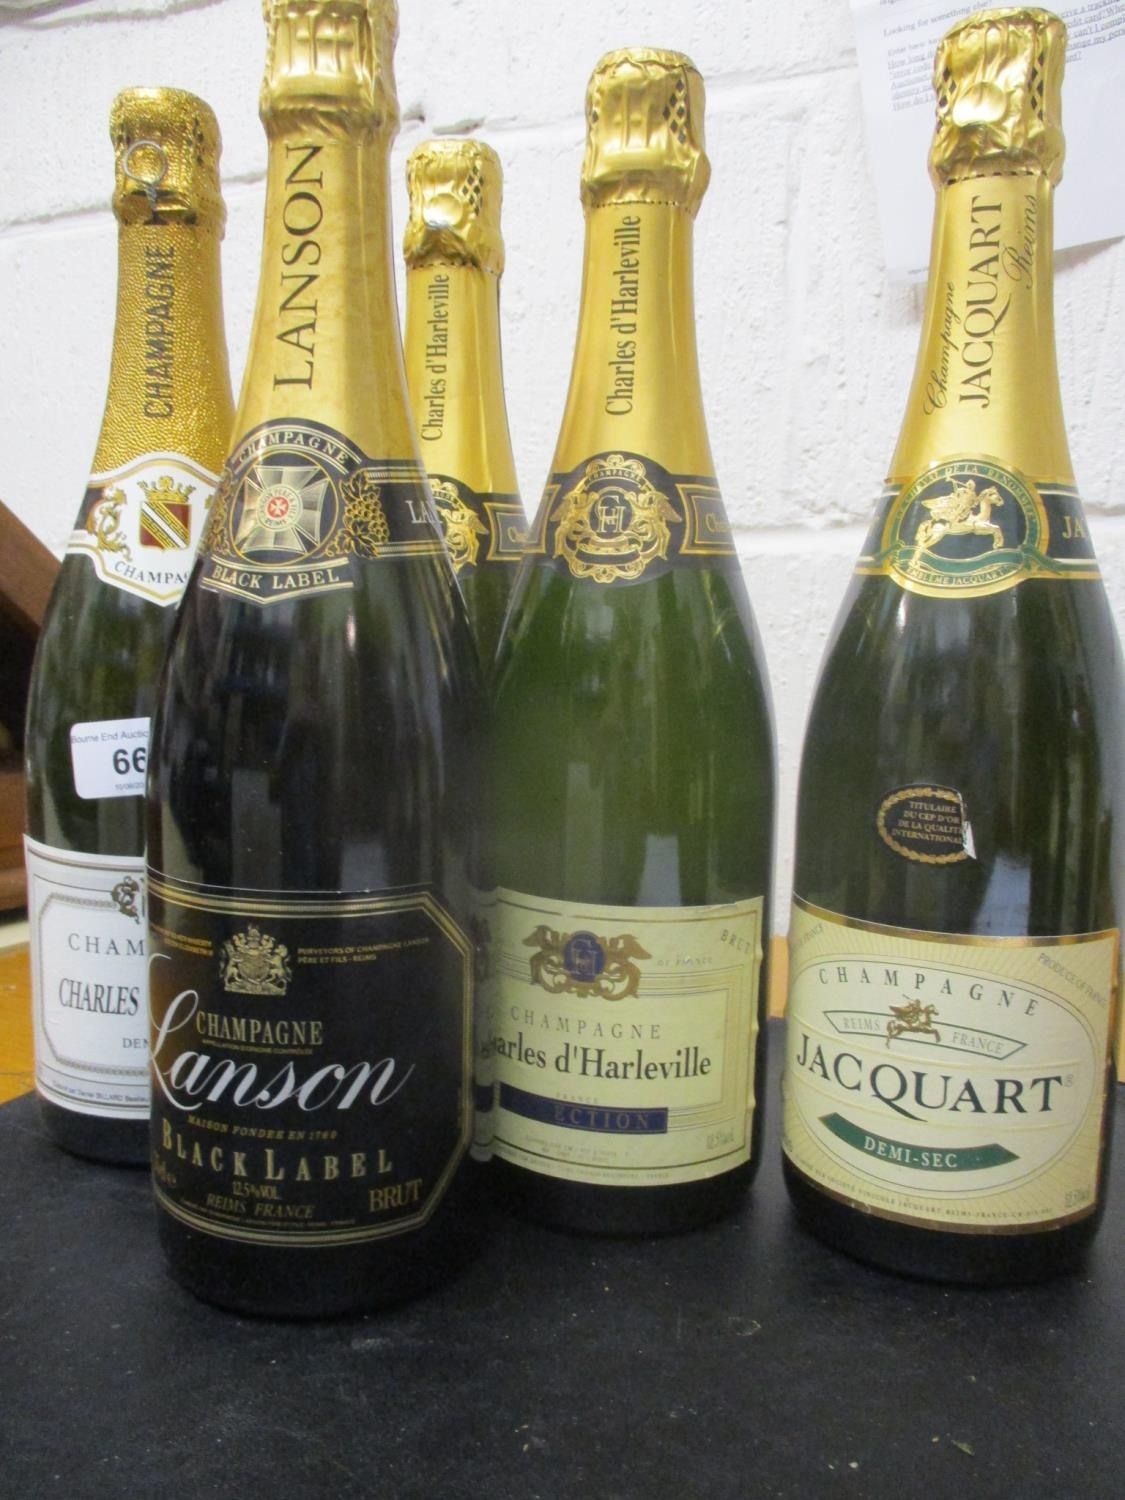 Five bottles of Champagne to include Lanson Black Label, Charles du Plaisir Jacquart and Charles d'